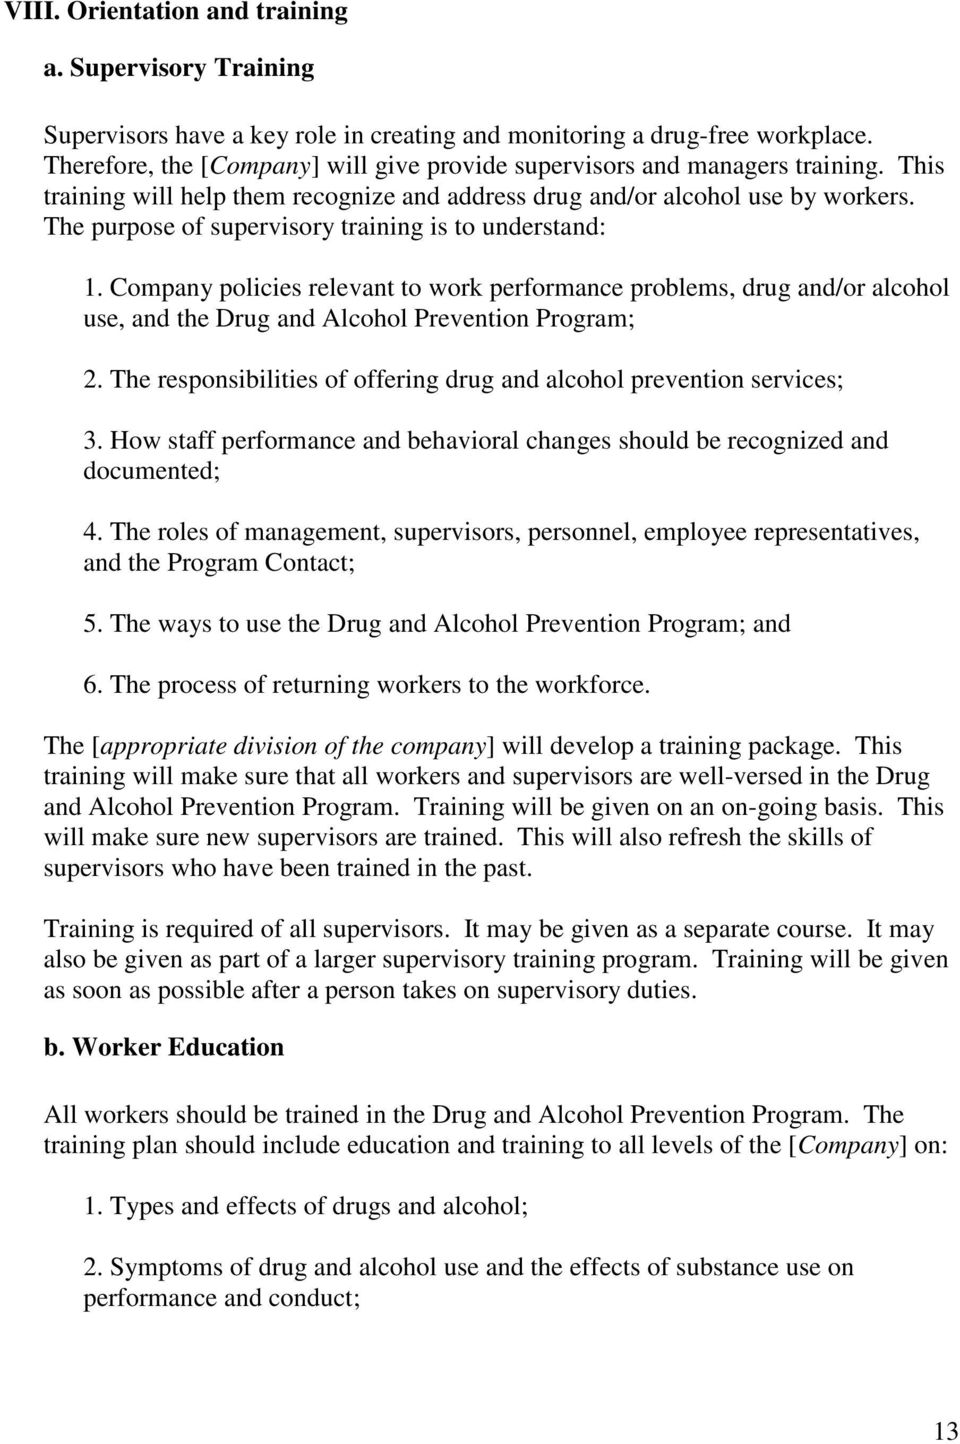 The purpose of supervisory training is to understand: 1. Company policies relevant to work performance problems, drug and/or alcohol use, and the Drug and Alcohol Prevention Program; 2.